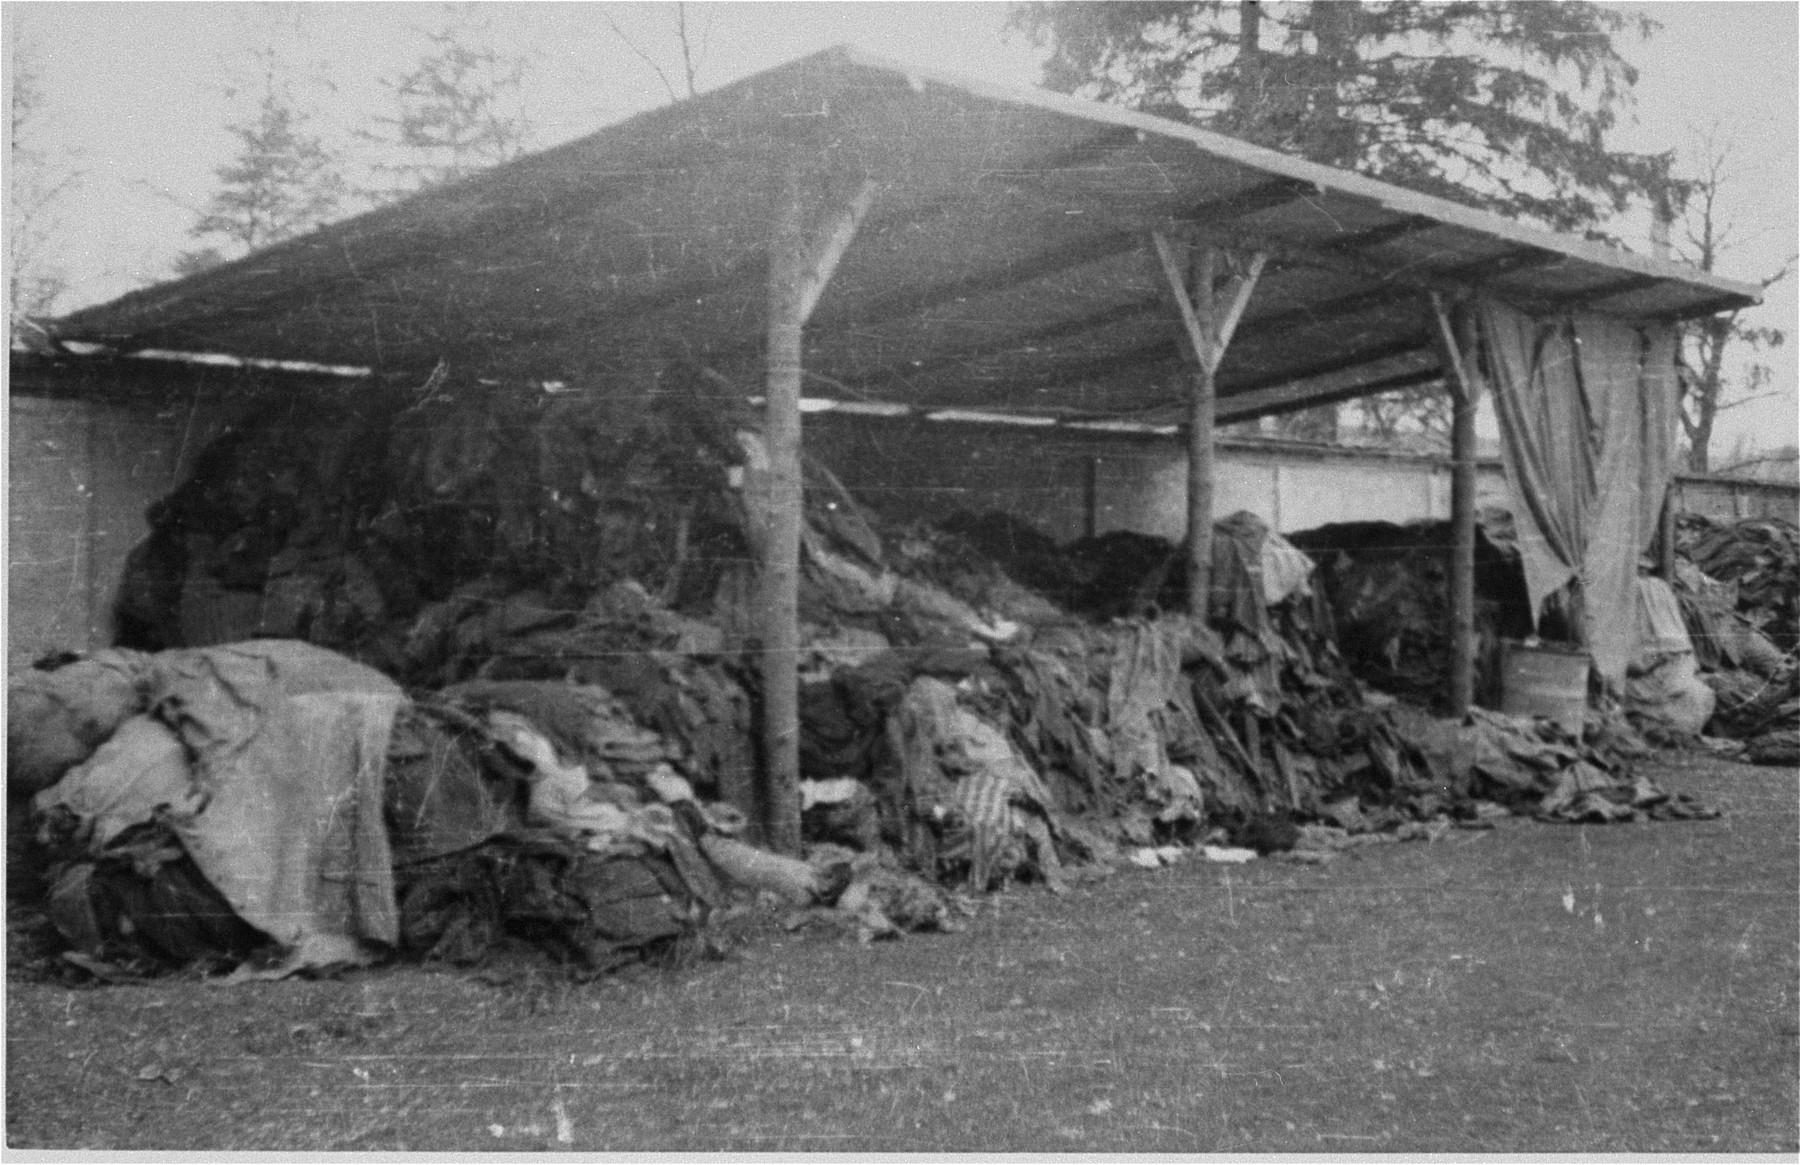 Prisoners clothing piled outside under an overhang.